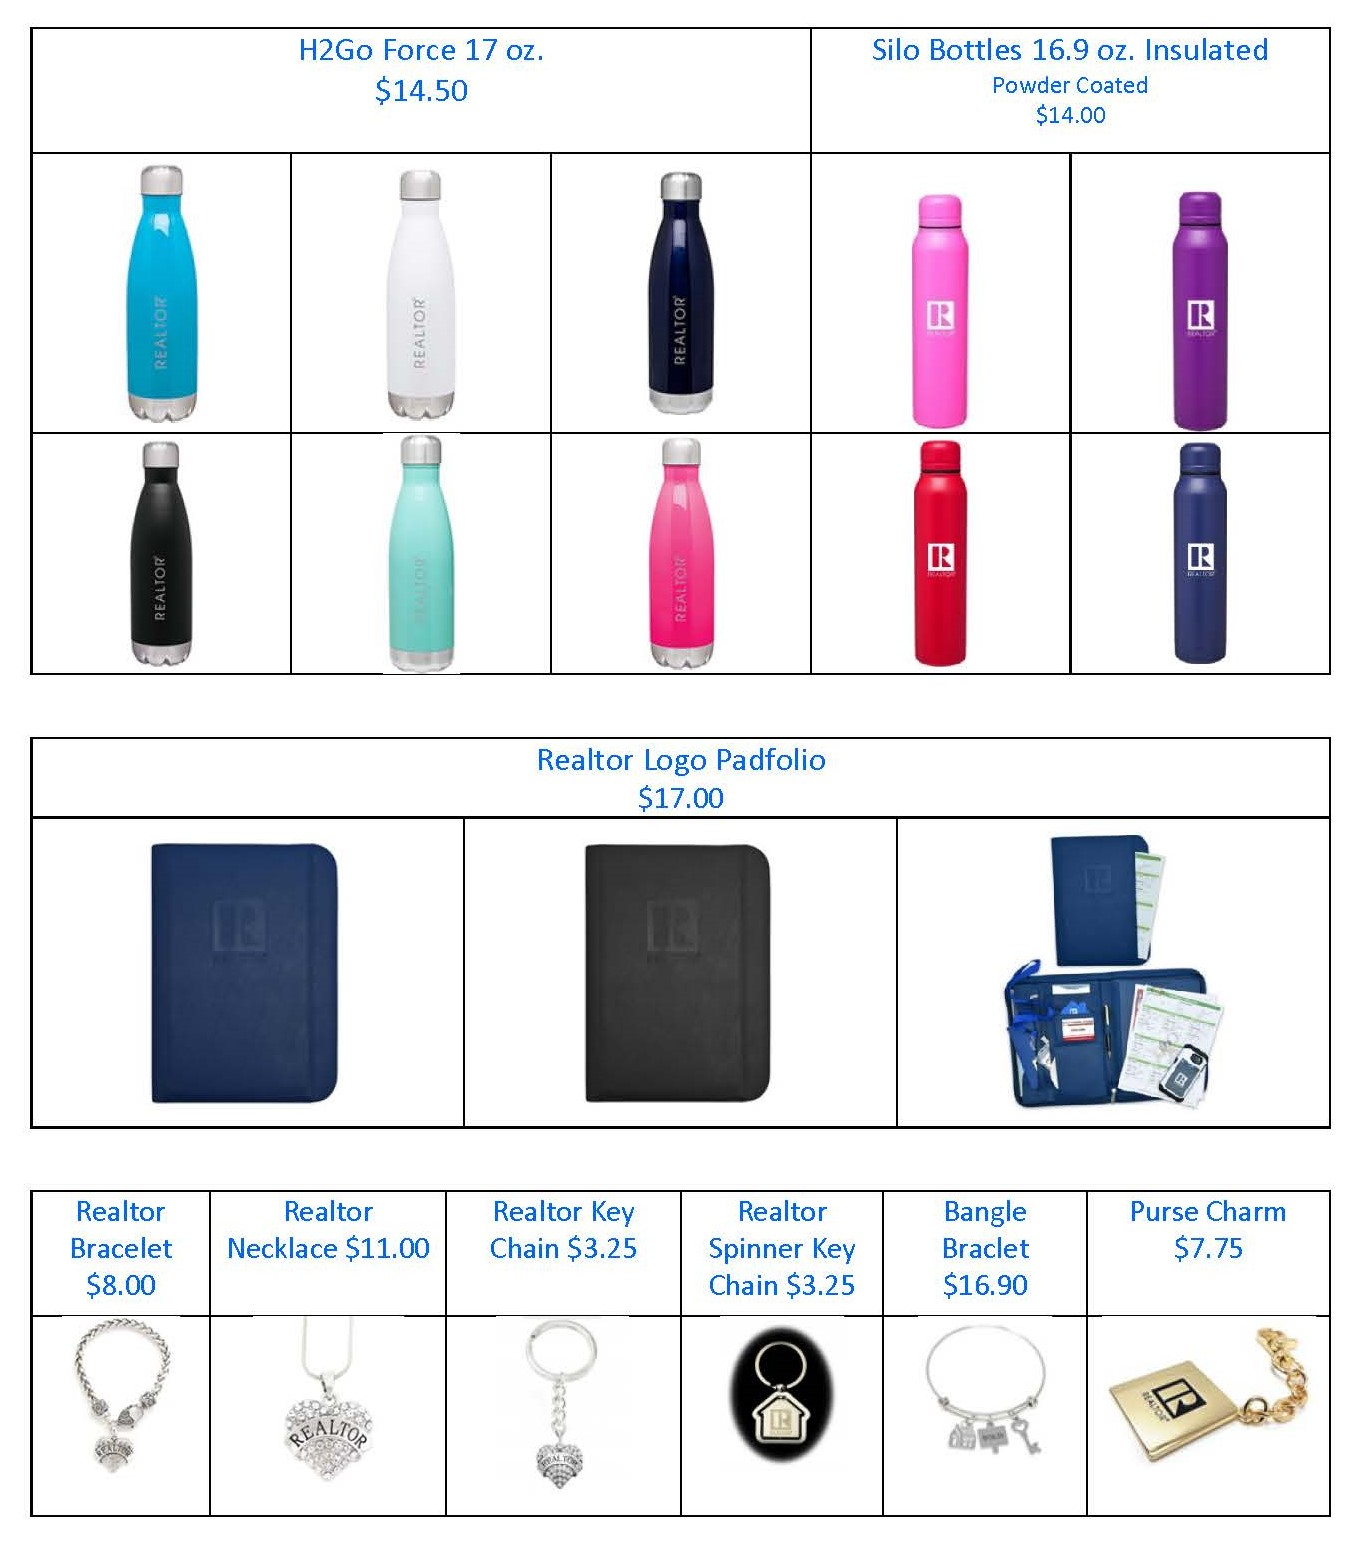 Waterbottles, Padfolios, and Keychains